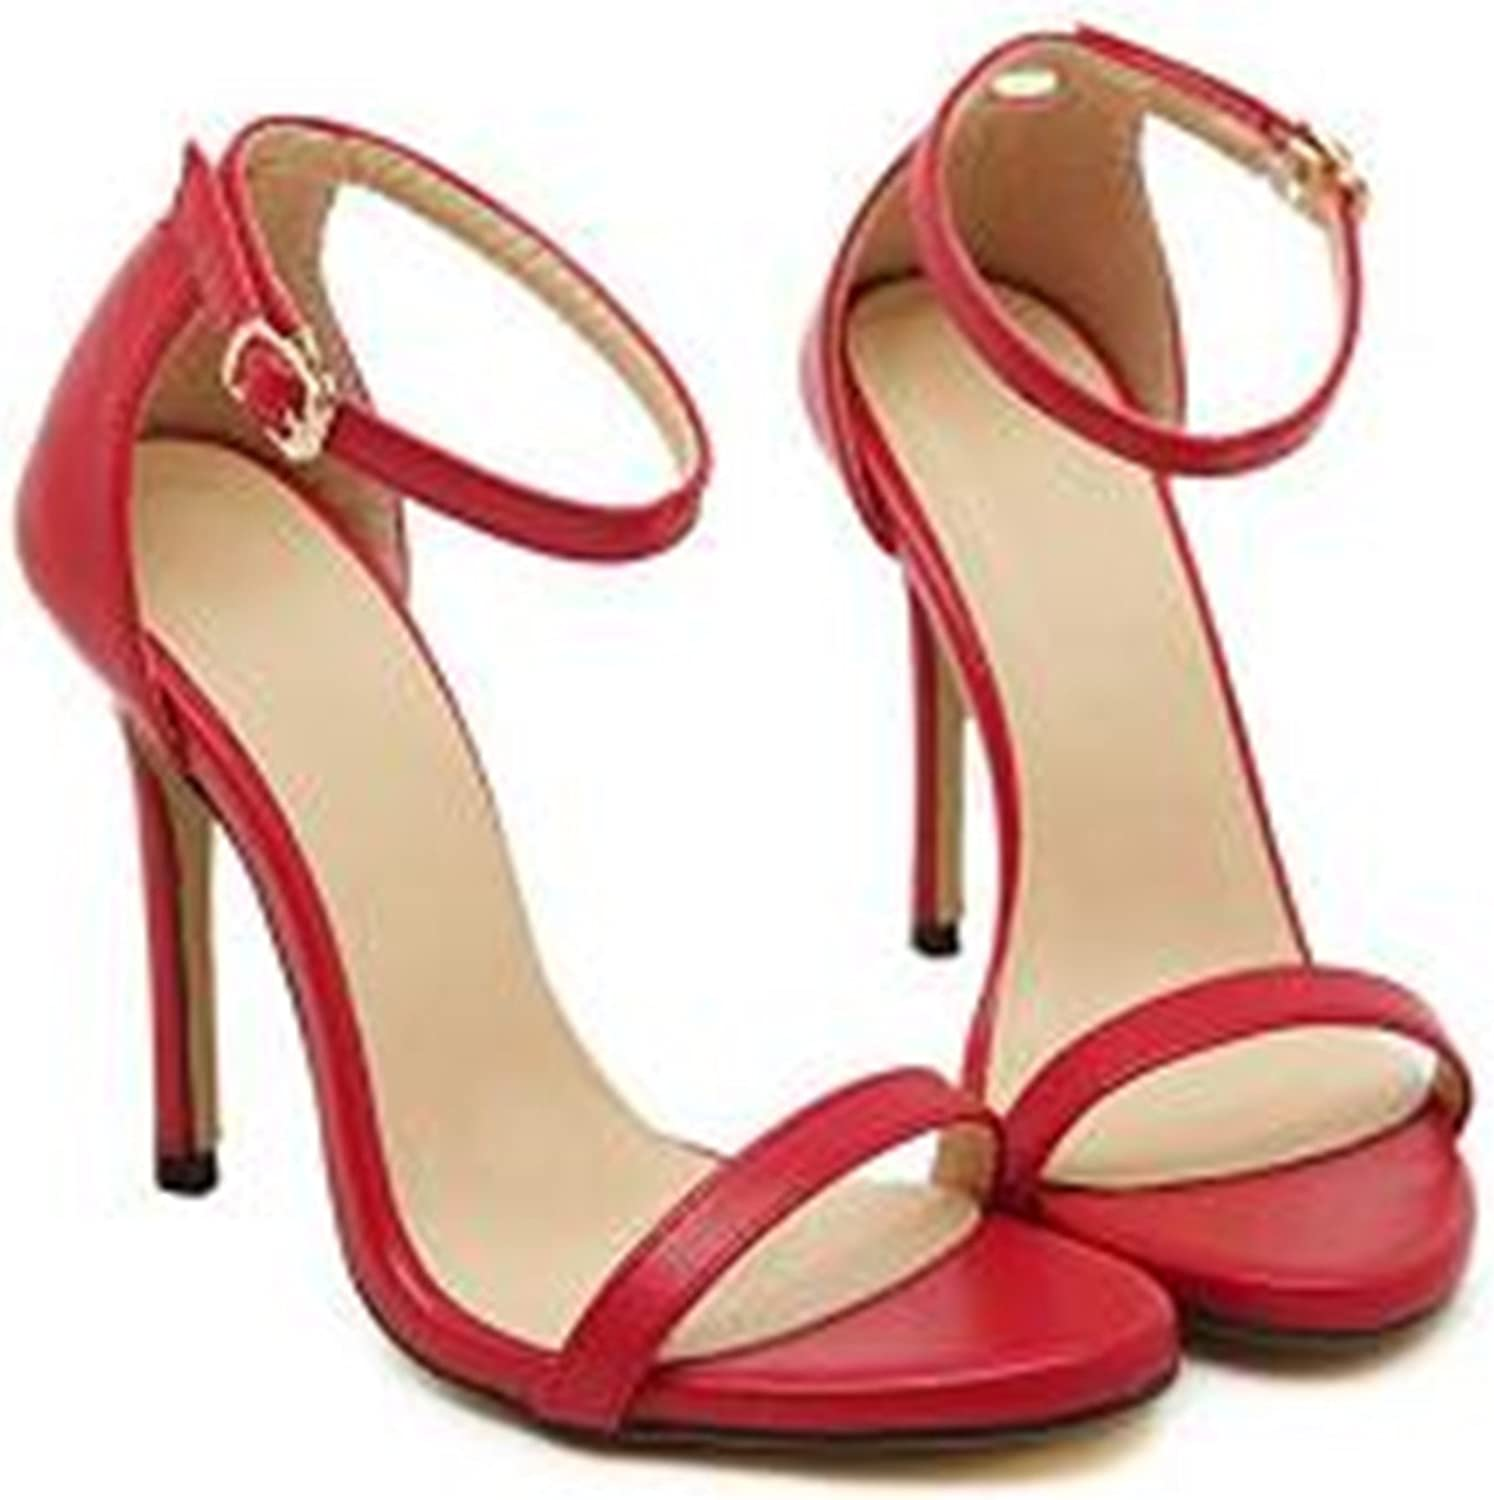 Ivan Johns Wedding Sandals high Heels Pumps Summer T-Stage Sexy Wedding shoes for Party Sandals Peep Toe Buckle Trap